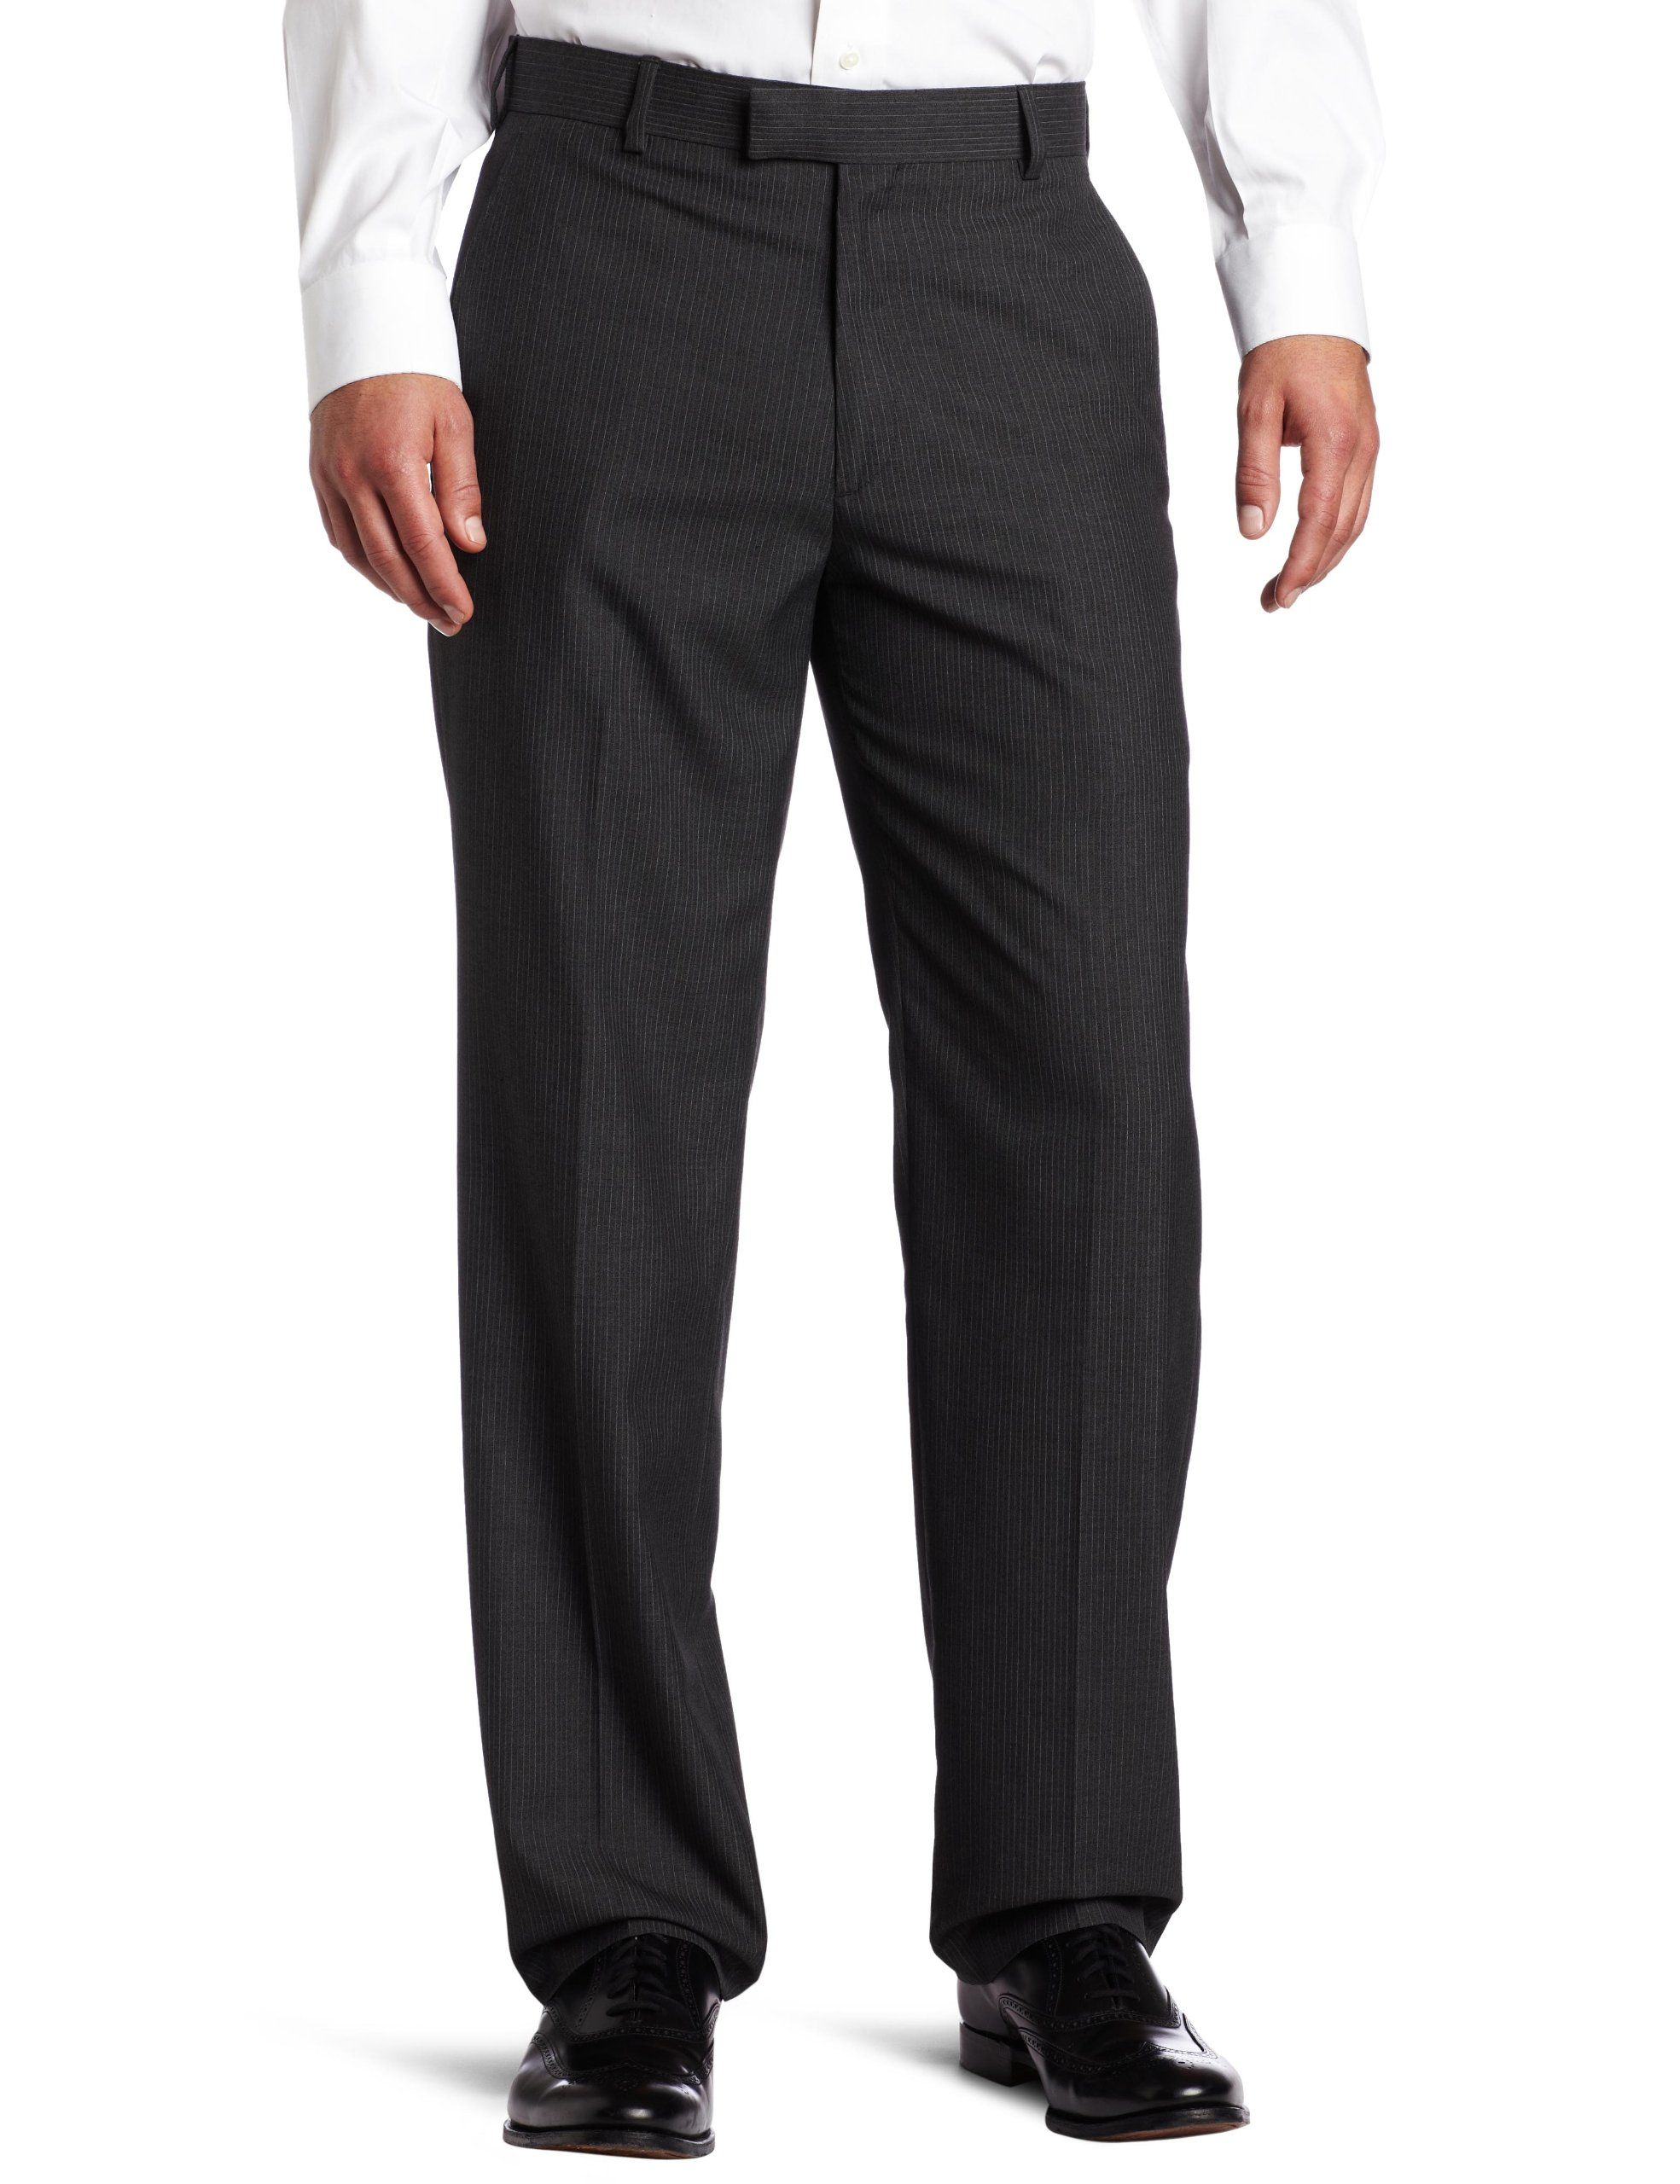 Haggar Men's Textured Pinstripe Tailored Fit Plain Front Suit Separate Pant, Charcoal Heather, 38/29